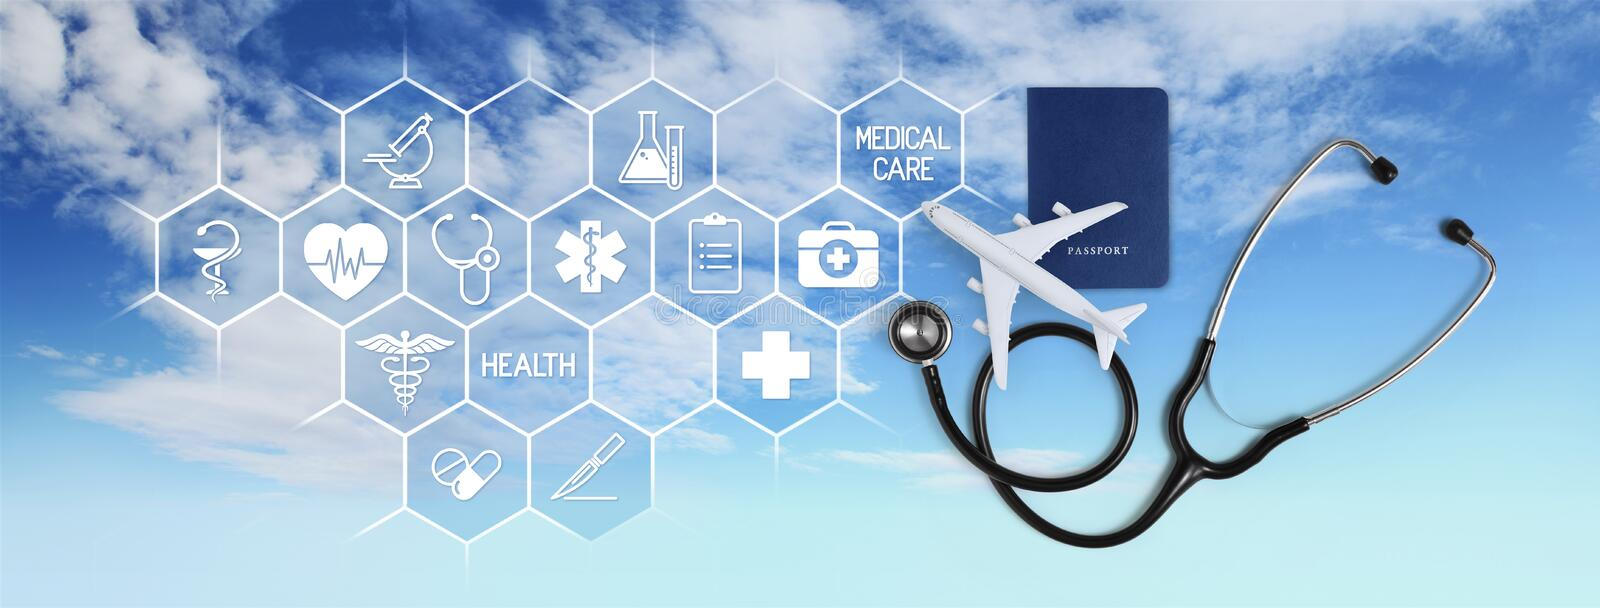 International medical travel insurance concept, stethoscope, passport and airplane, with icons and symbols isolated. On sky background stock photography